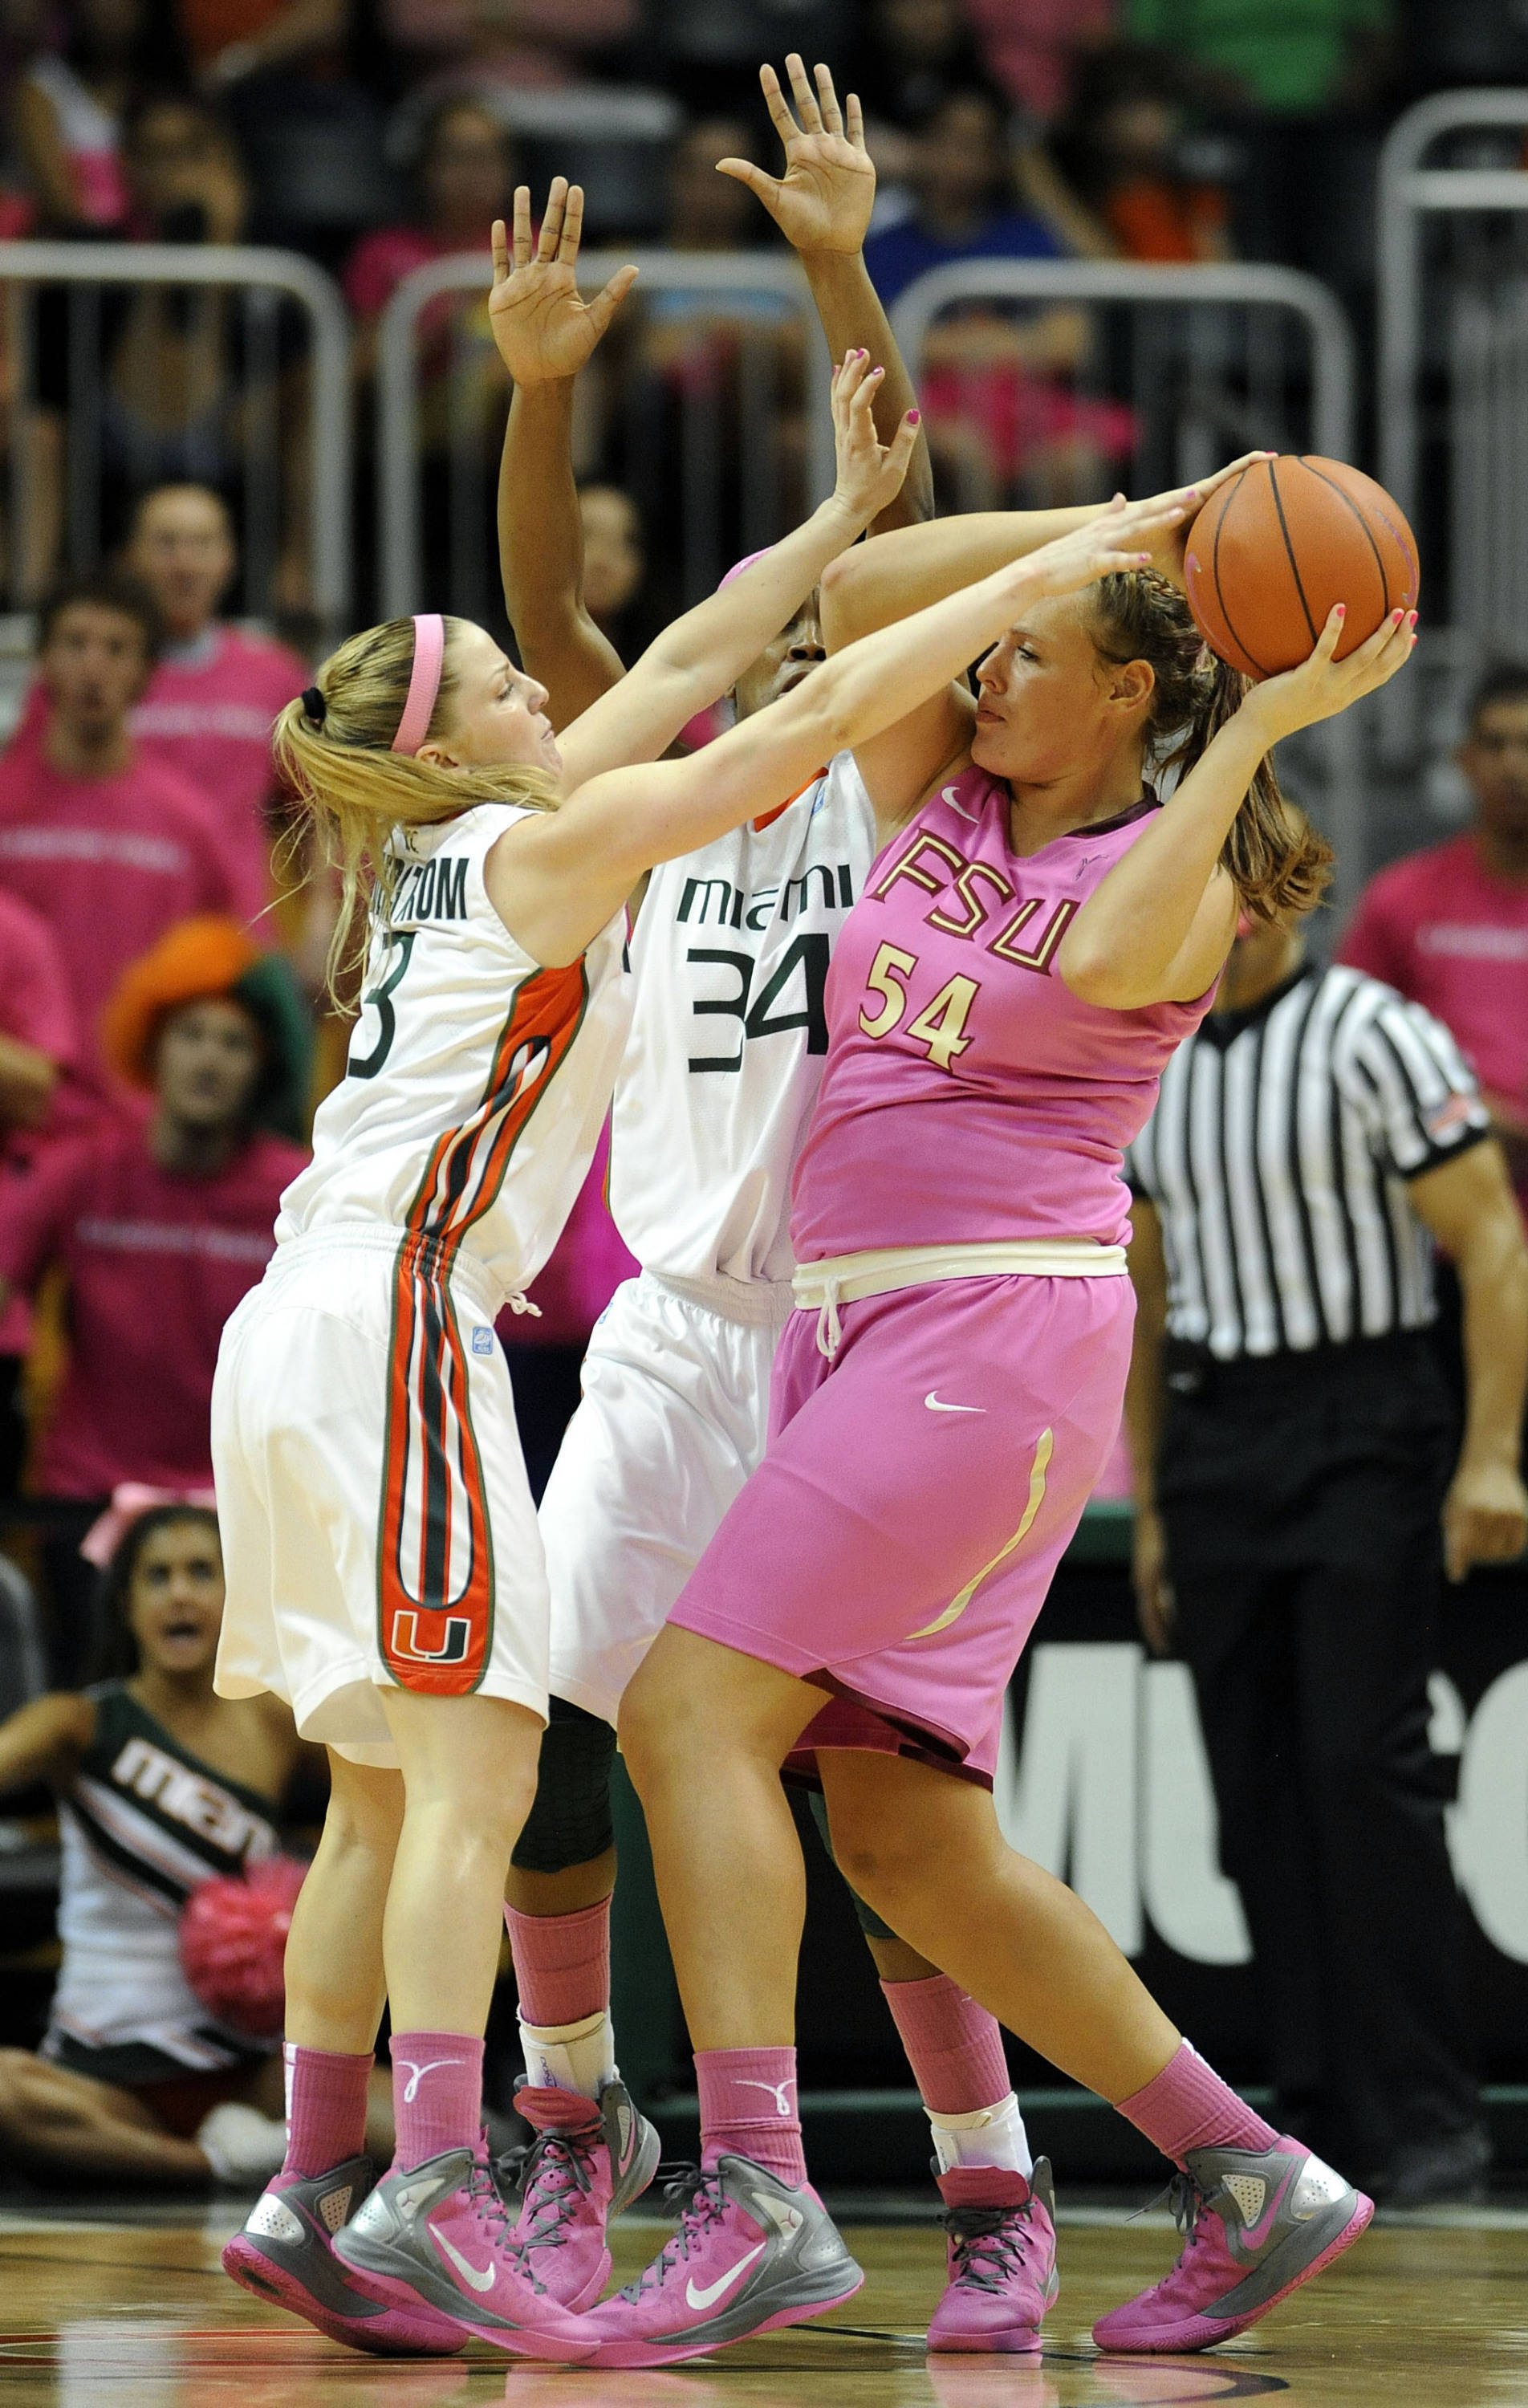 Miami's Stefanie Yderstrom, left, and Sylvia Bullock, center, defend Florida State's Cierra Bravard, right, during the first half of an NCAA college basketball game on Sunday, Feb. 19, 2012, in Coral Gables, Fla. (AP Photo/Rhona Wise)